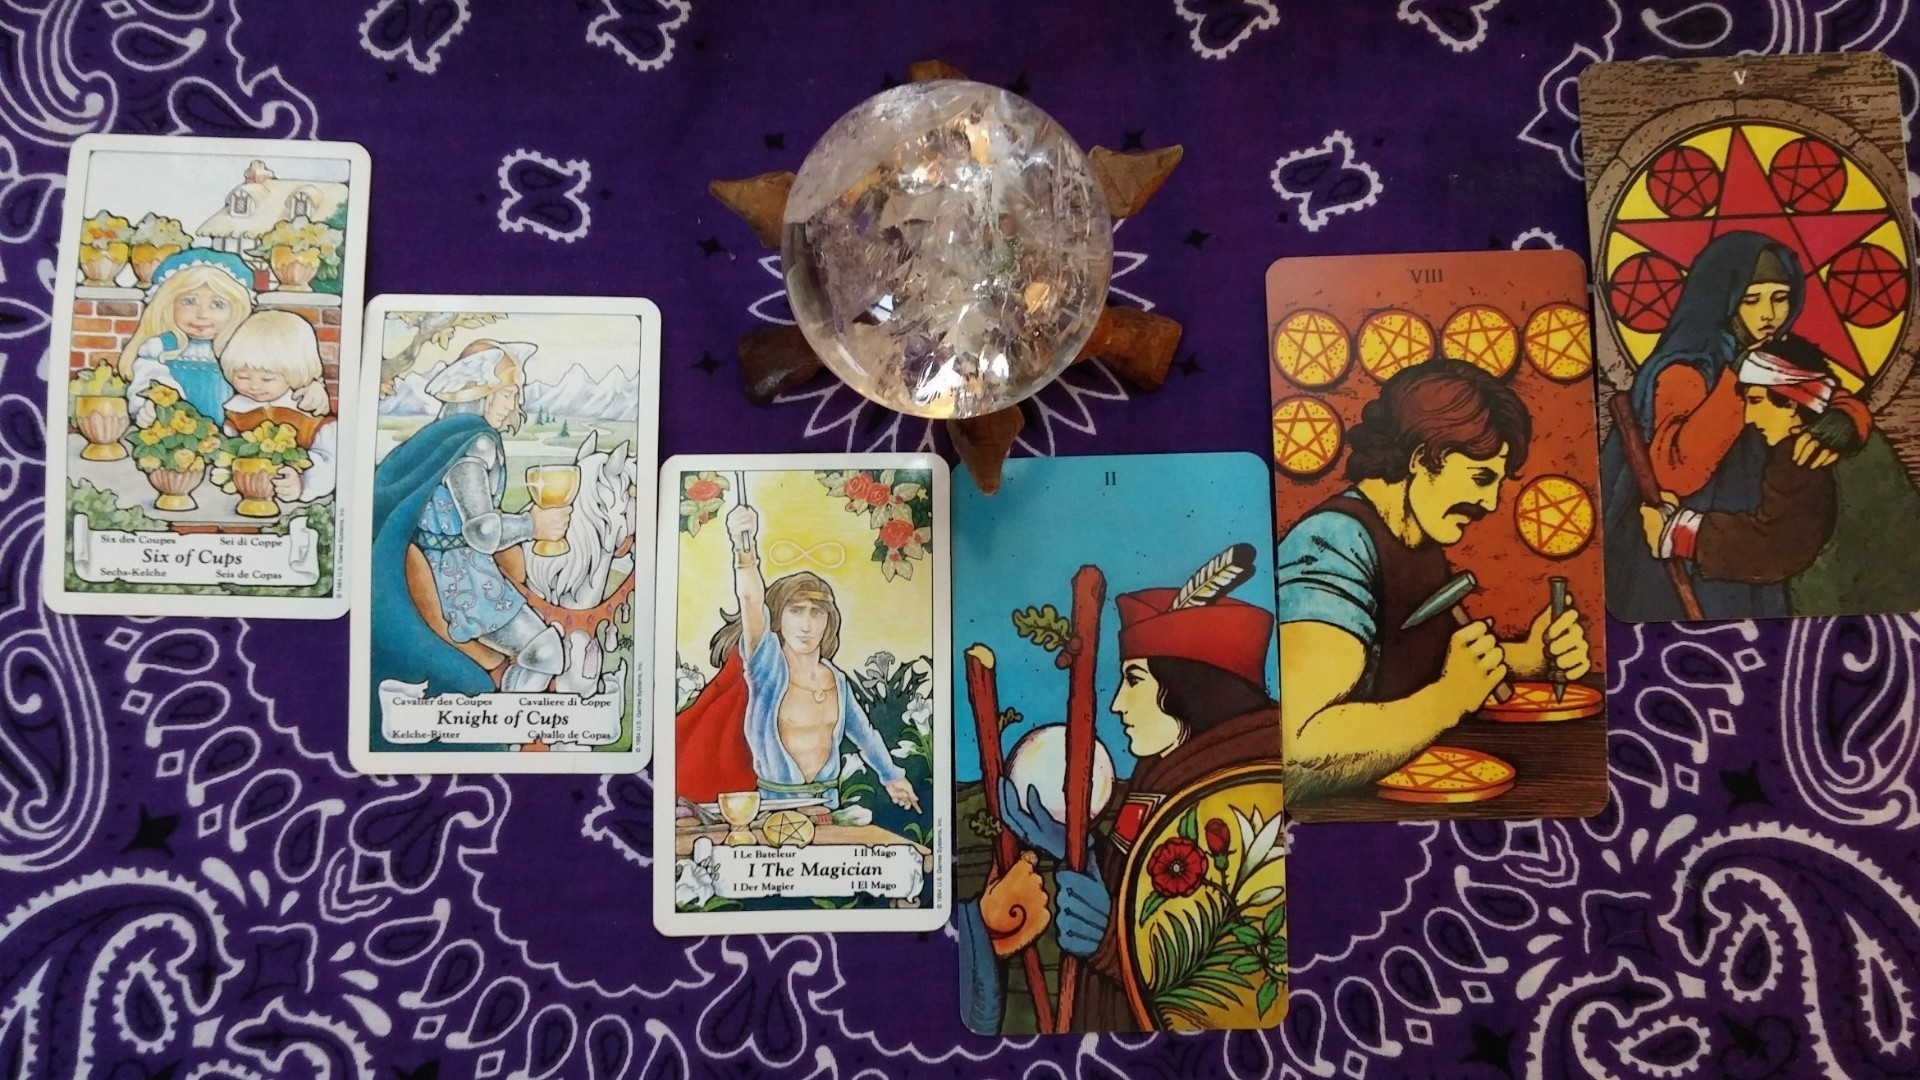 taurus psychic tarot reading for february 2020 by pam georgel